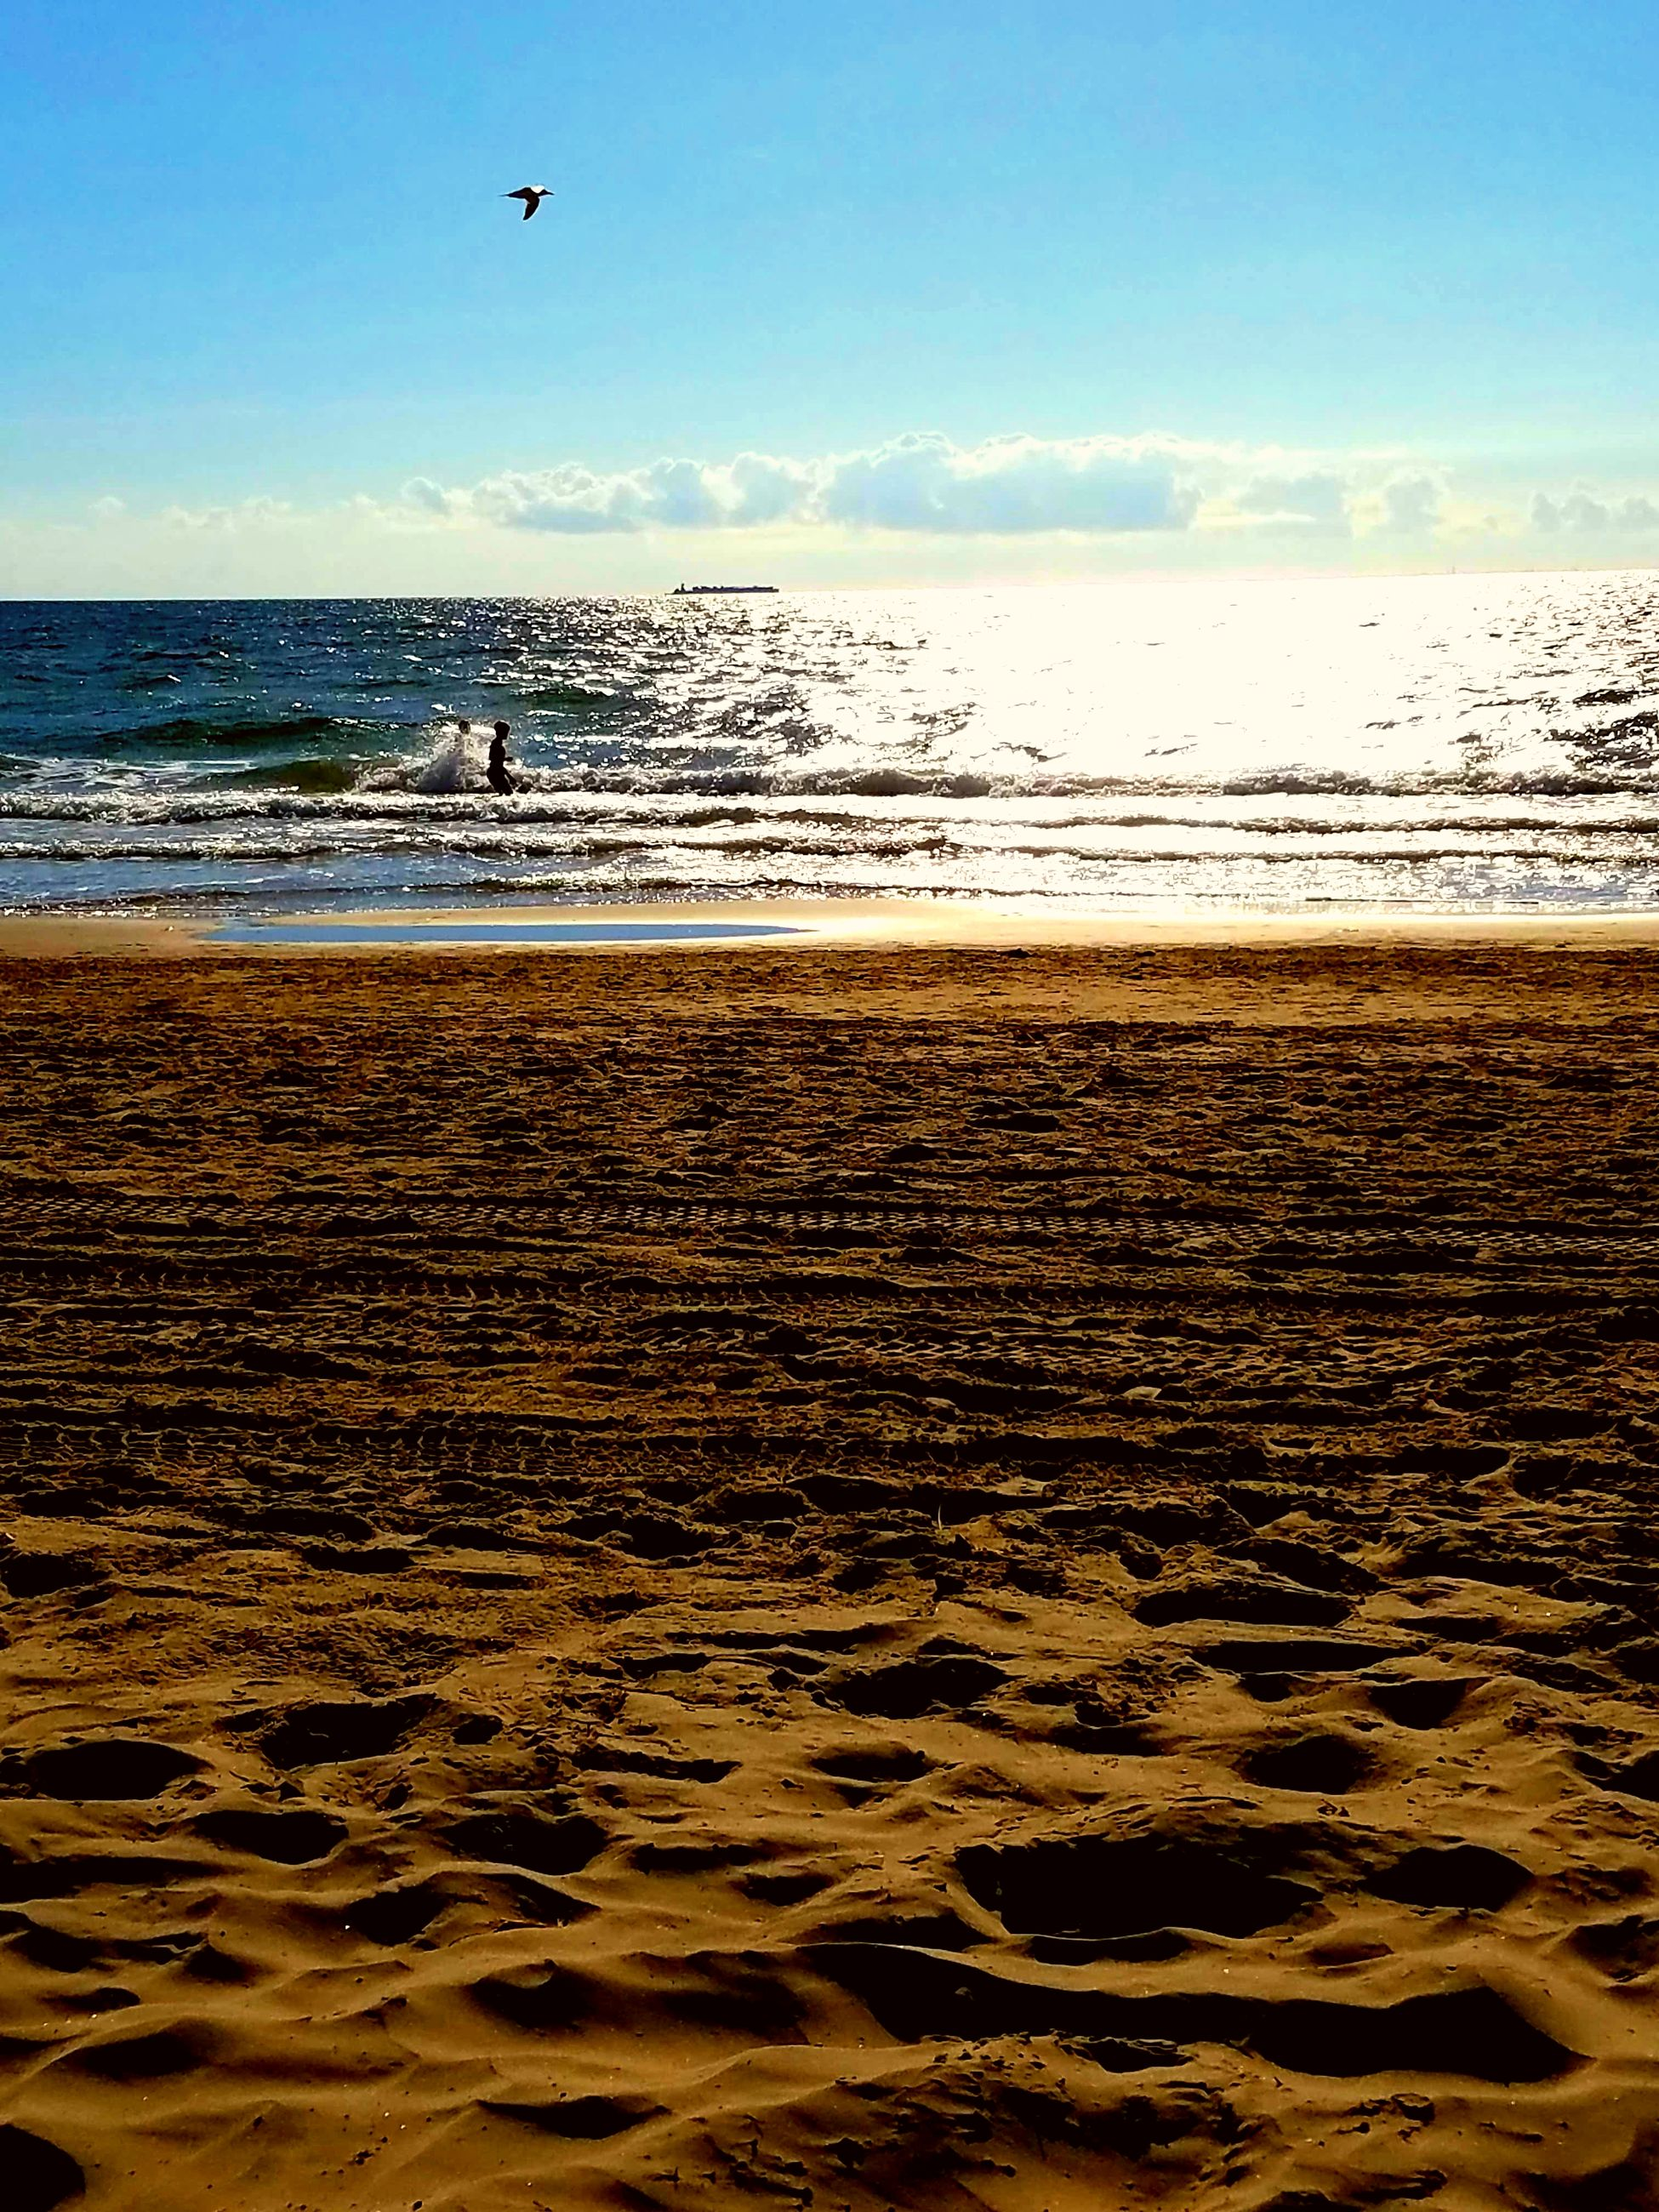 sea, beach, water, nature, sand, horizon over water, beauty in nature, scenics, sky, outdoors, sunlight, day, wave, vacations, flying, adventure, no people, parachute, extreme sports